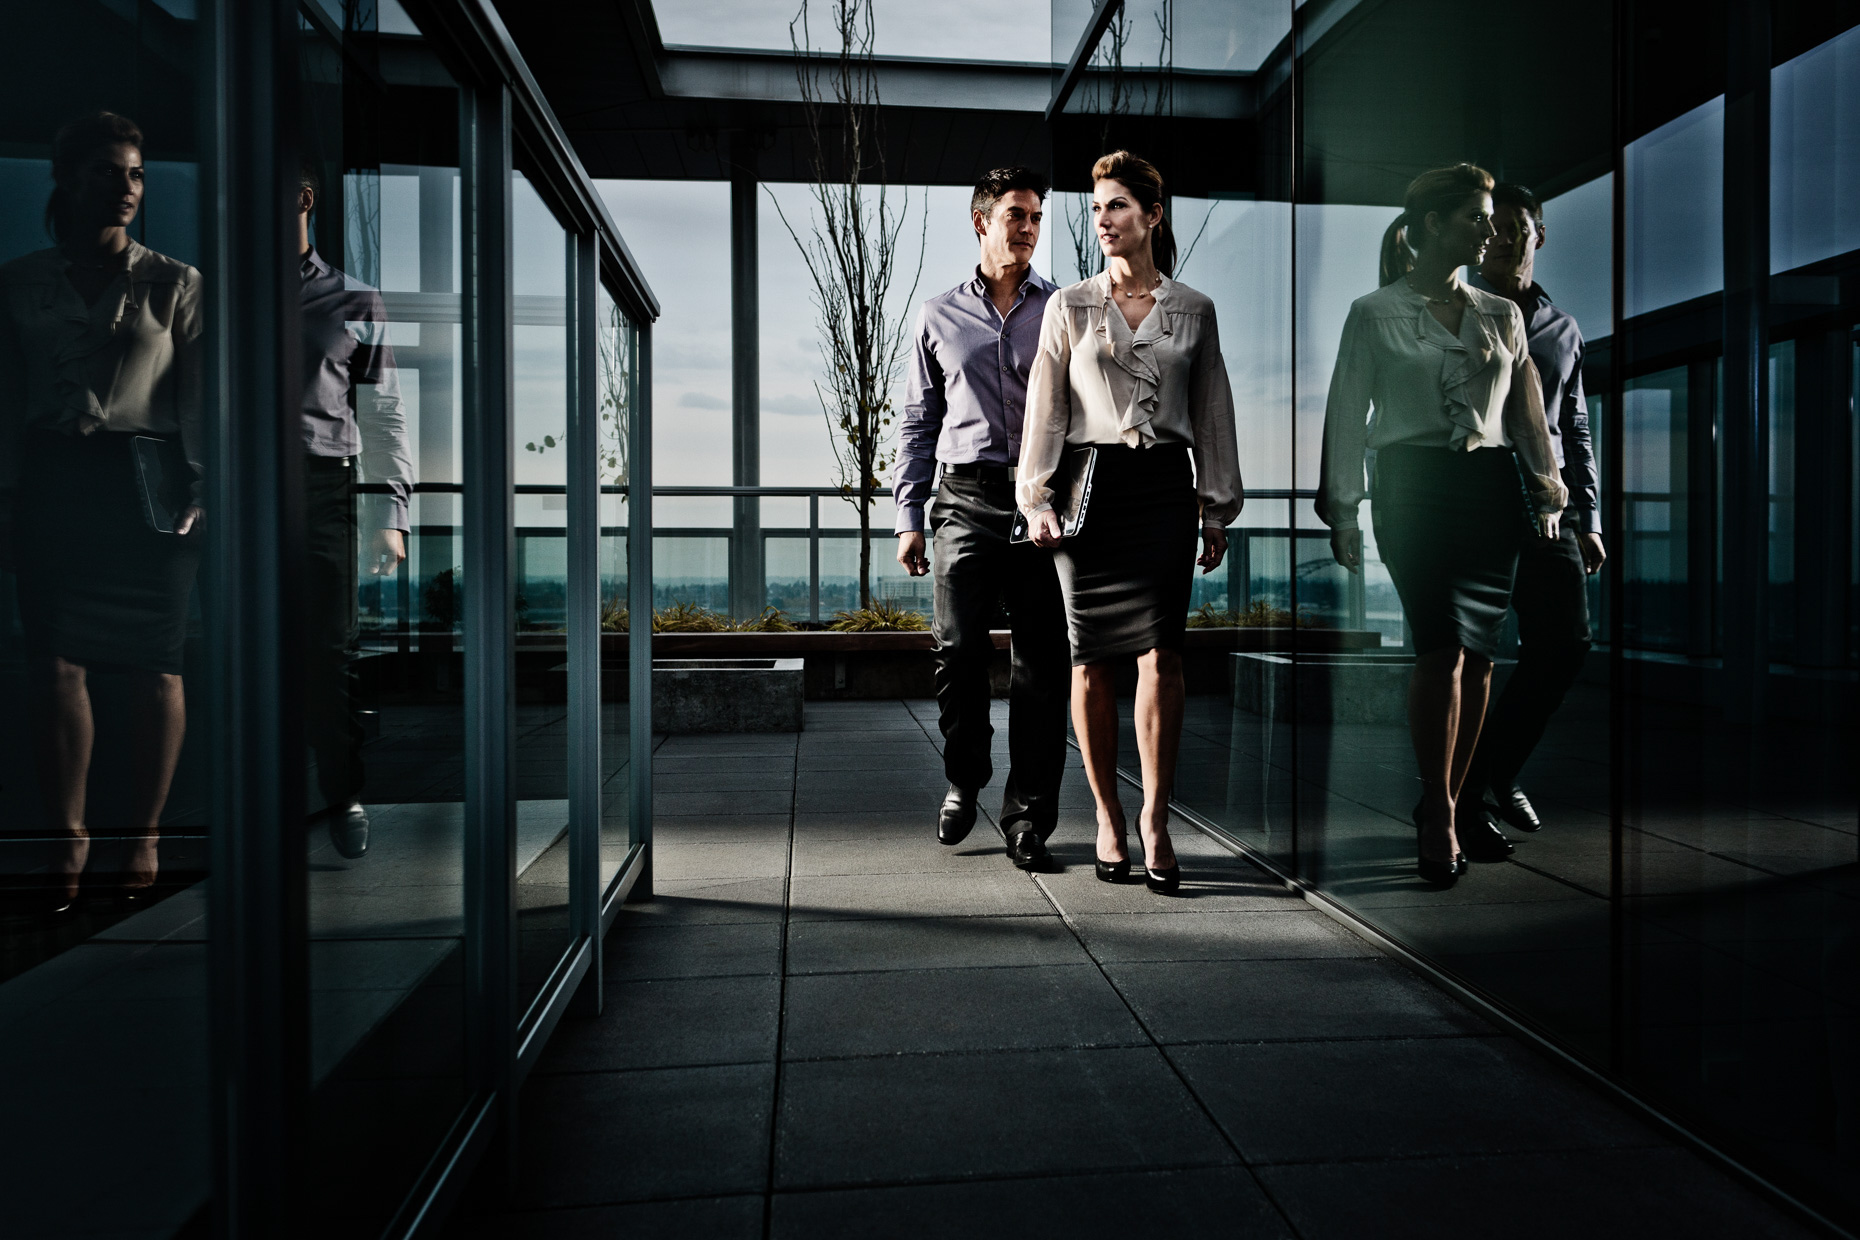 Portland models Veli Duvauchelle and Tina Kraft for HP Spectre laptop campaign in sleek Indigo penthouse by Andy Batt